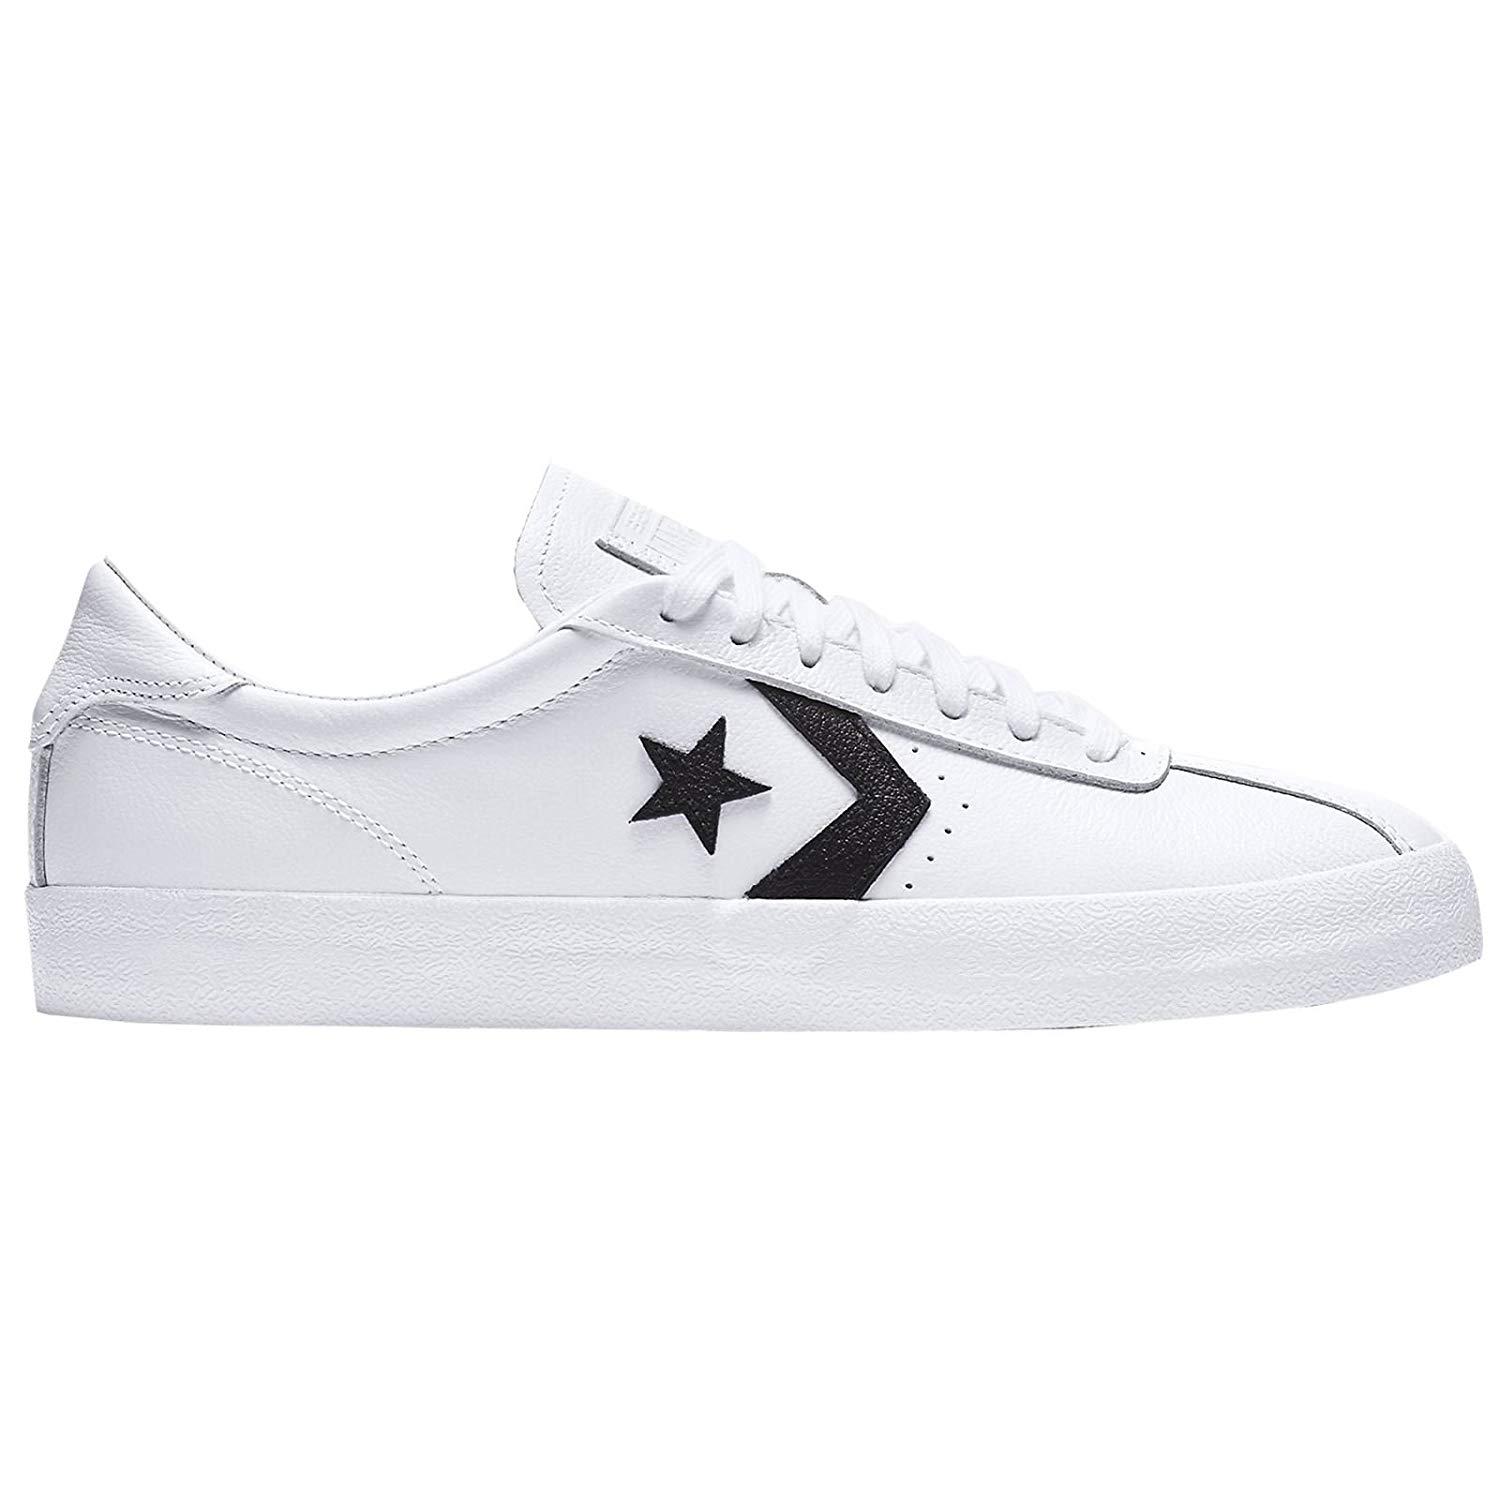 631906d40fa96 Converse Mens Breakpoint Leather Low Top Lace Up Fashion Sneakers